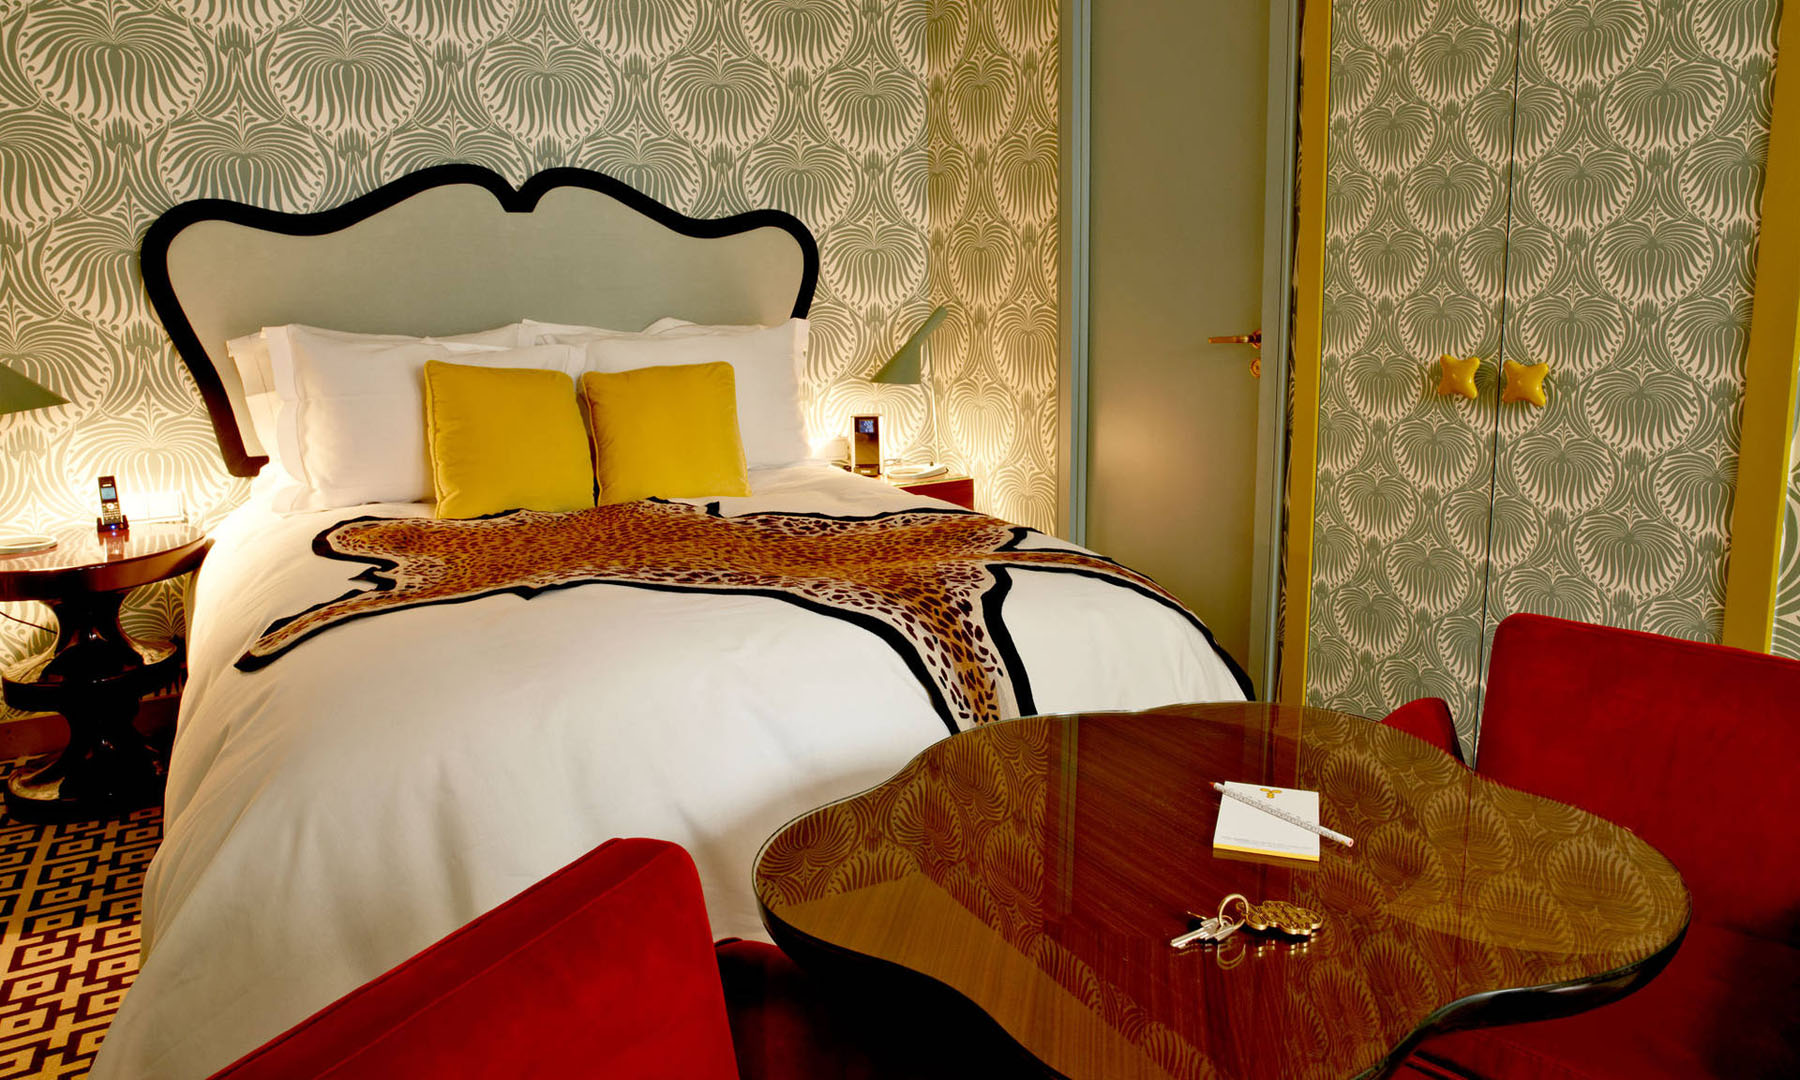 French art deco interior design by india mahdavi at hotel for Boutique deco